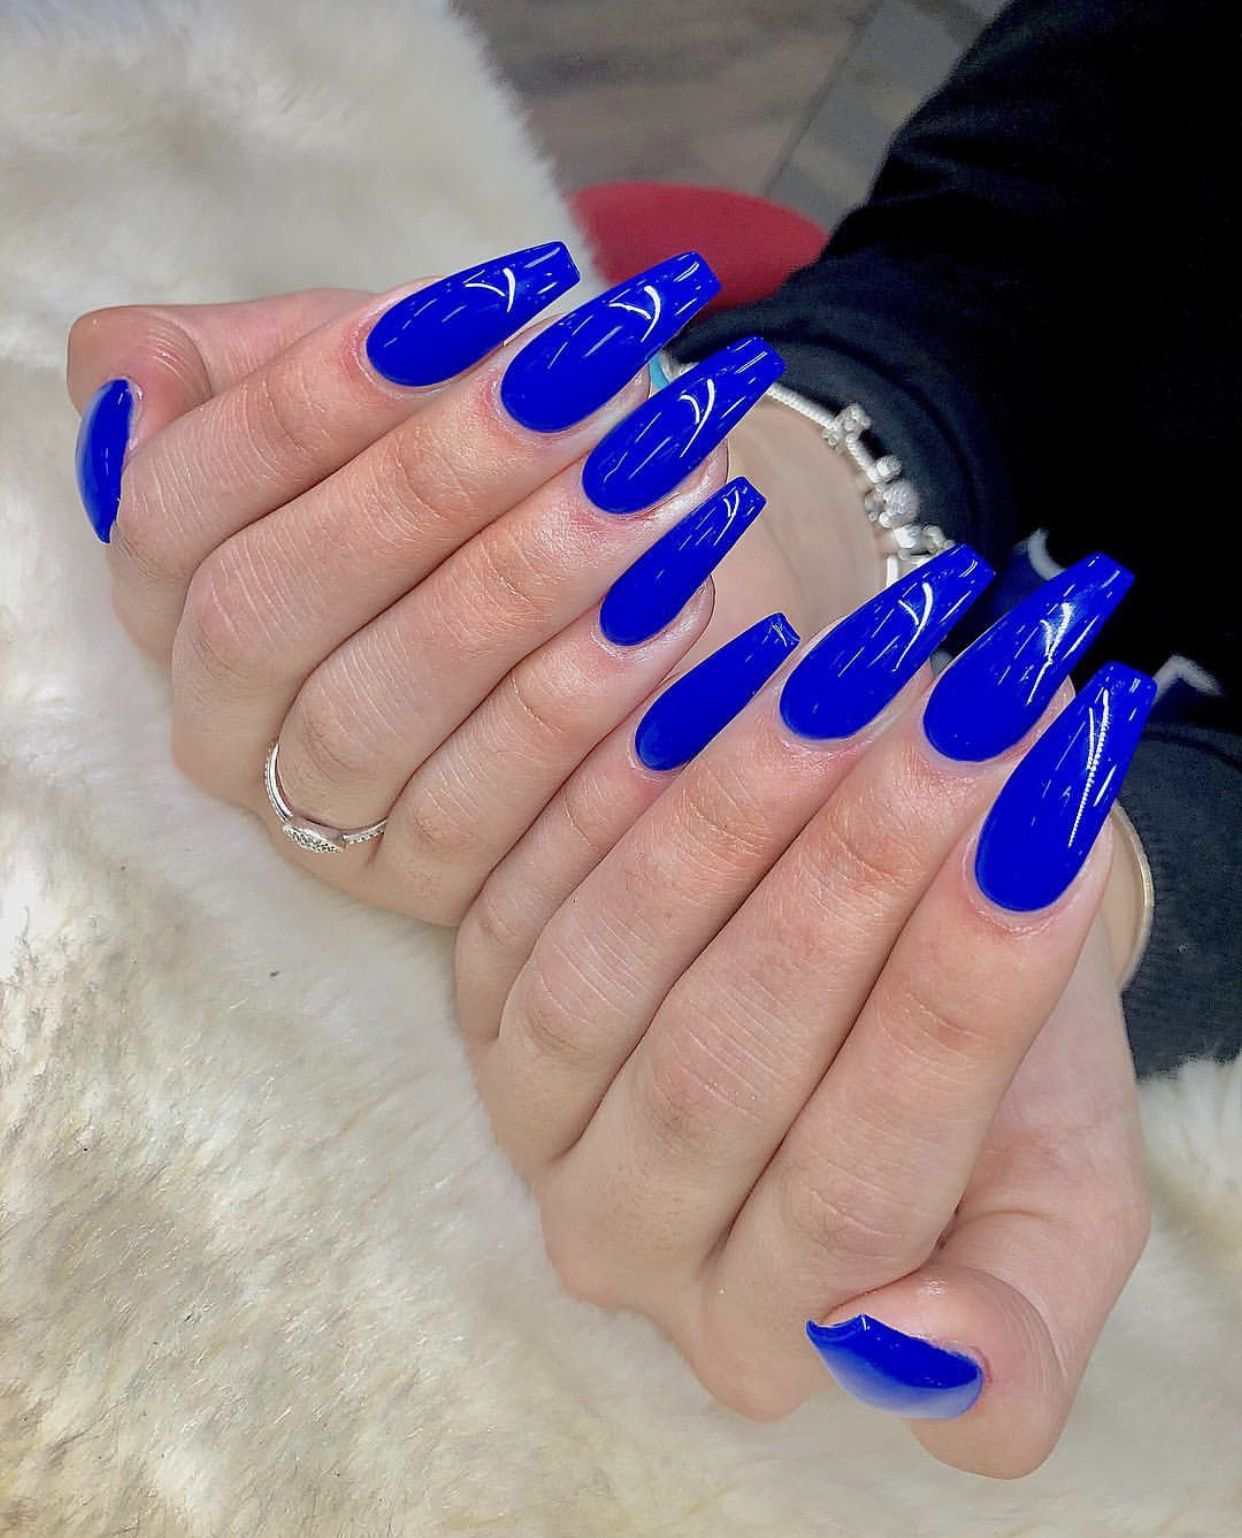 Pin By Bill Montague On Blue Nails Blue Acrylic Nails Coffin Nails Long Coffin Nails Designs